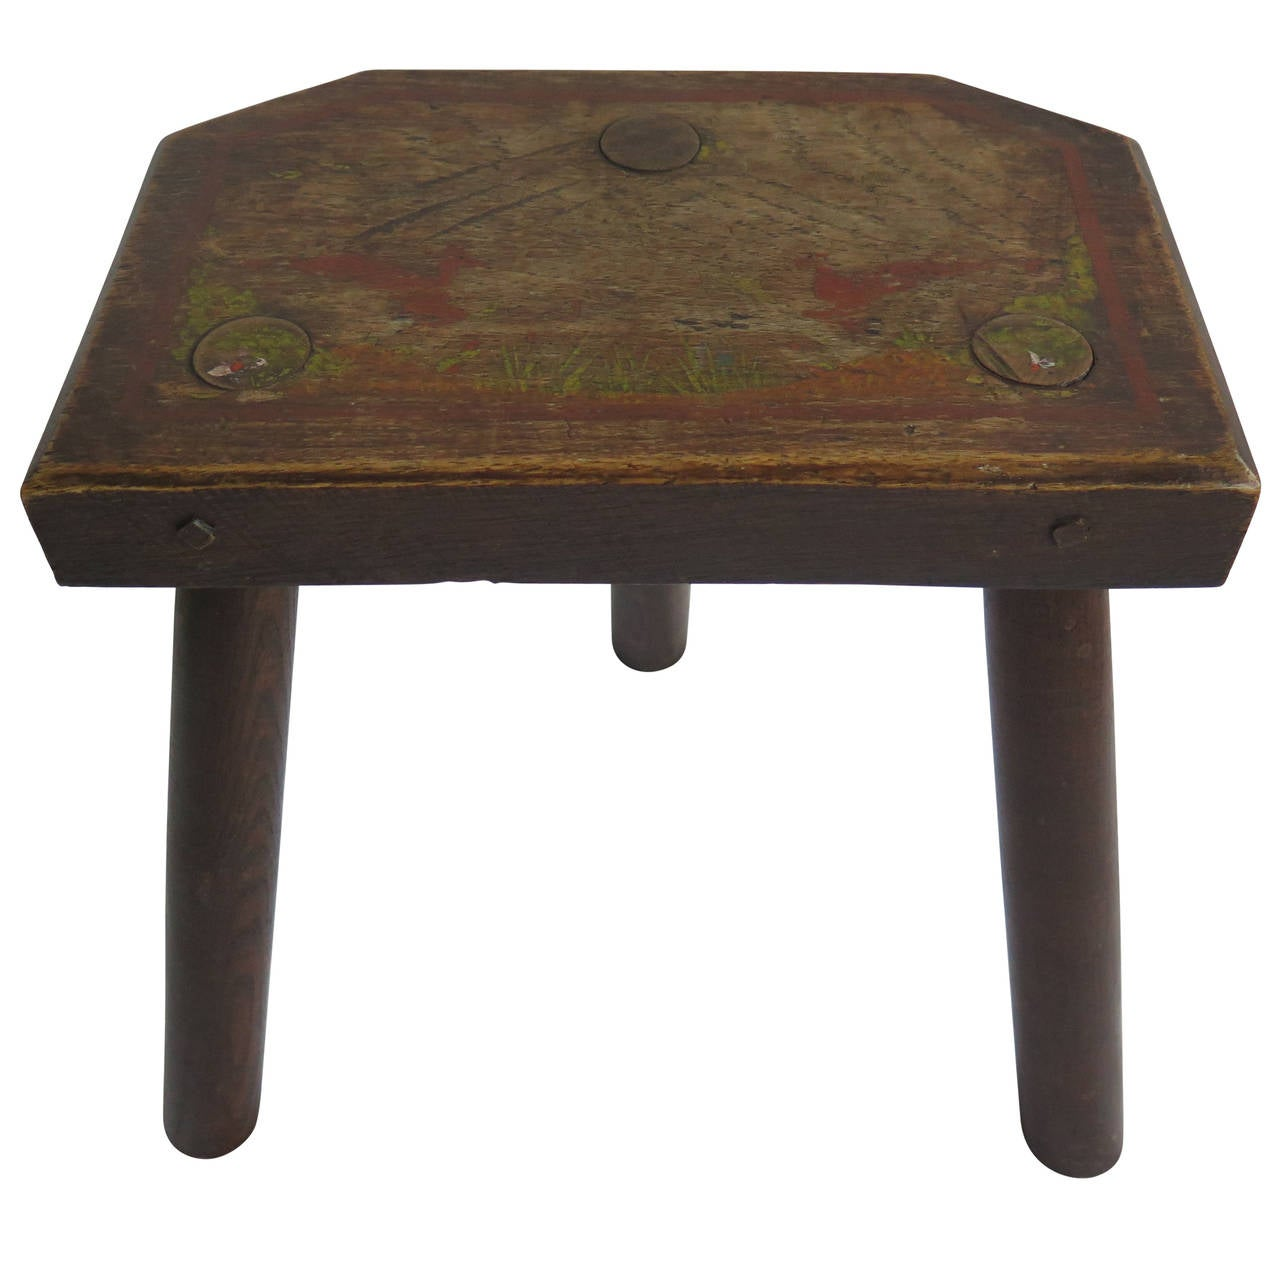 19th Century, Country Milking Stool, Hand-Painted Scene to Elm Top, Folk Art